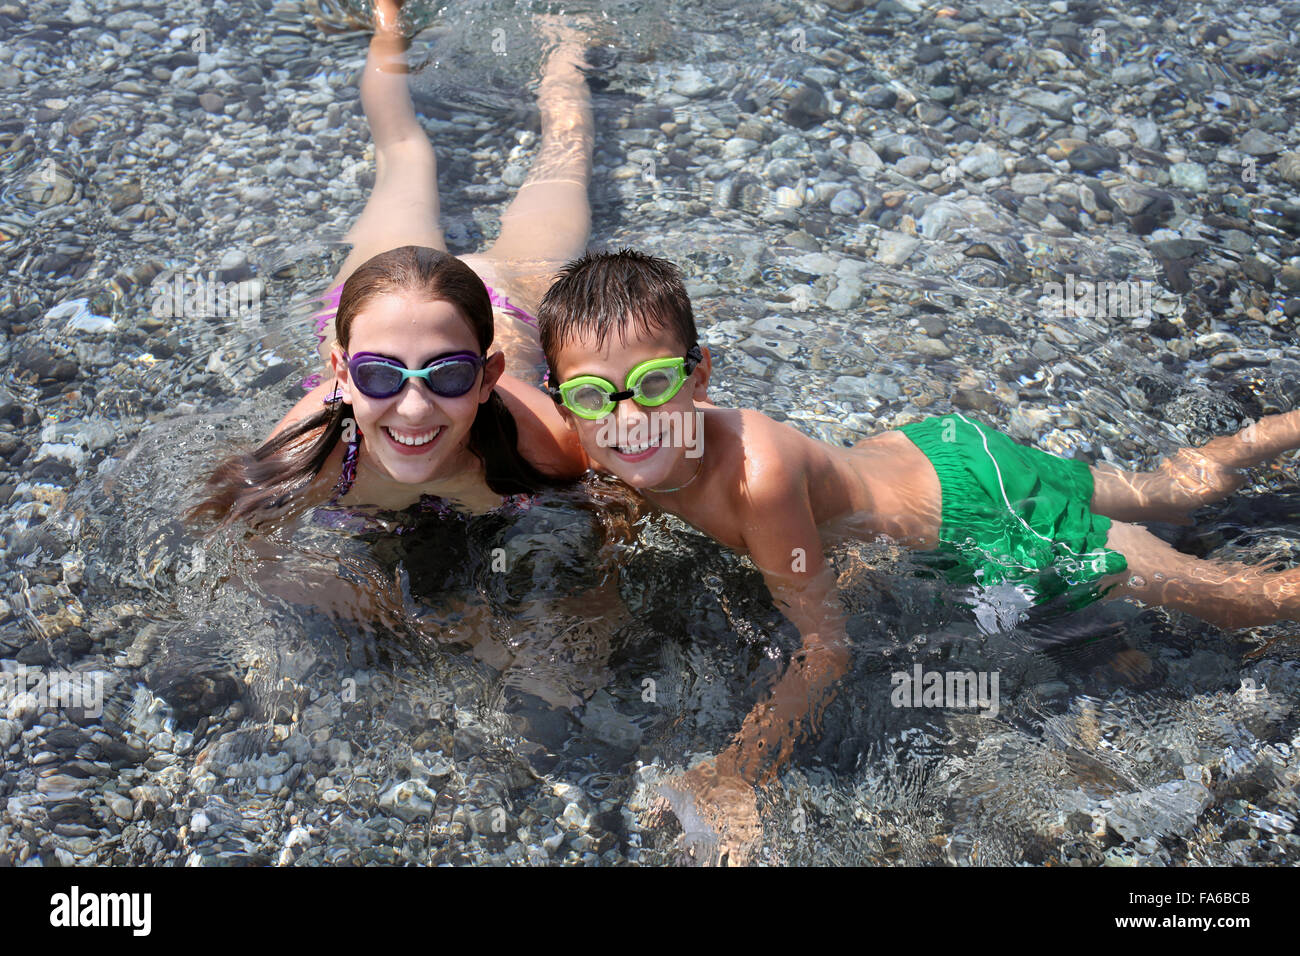 Boy and girl lying in shallow water at beach - Stock Image